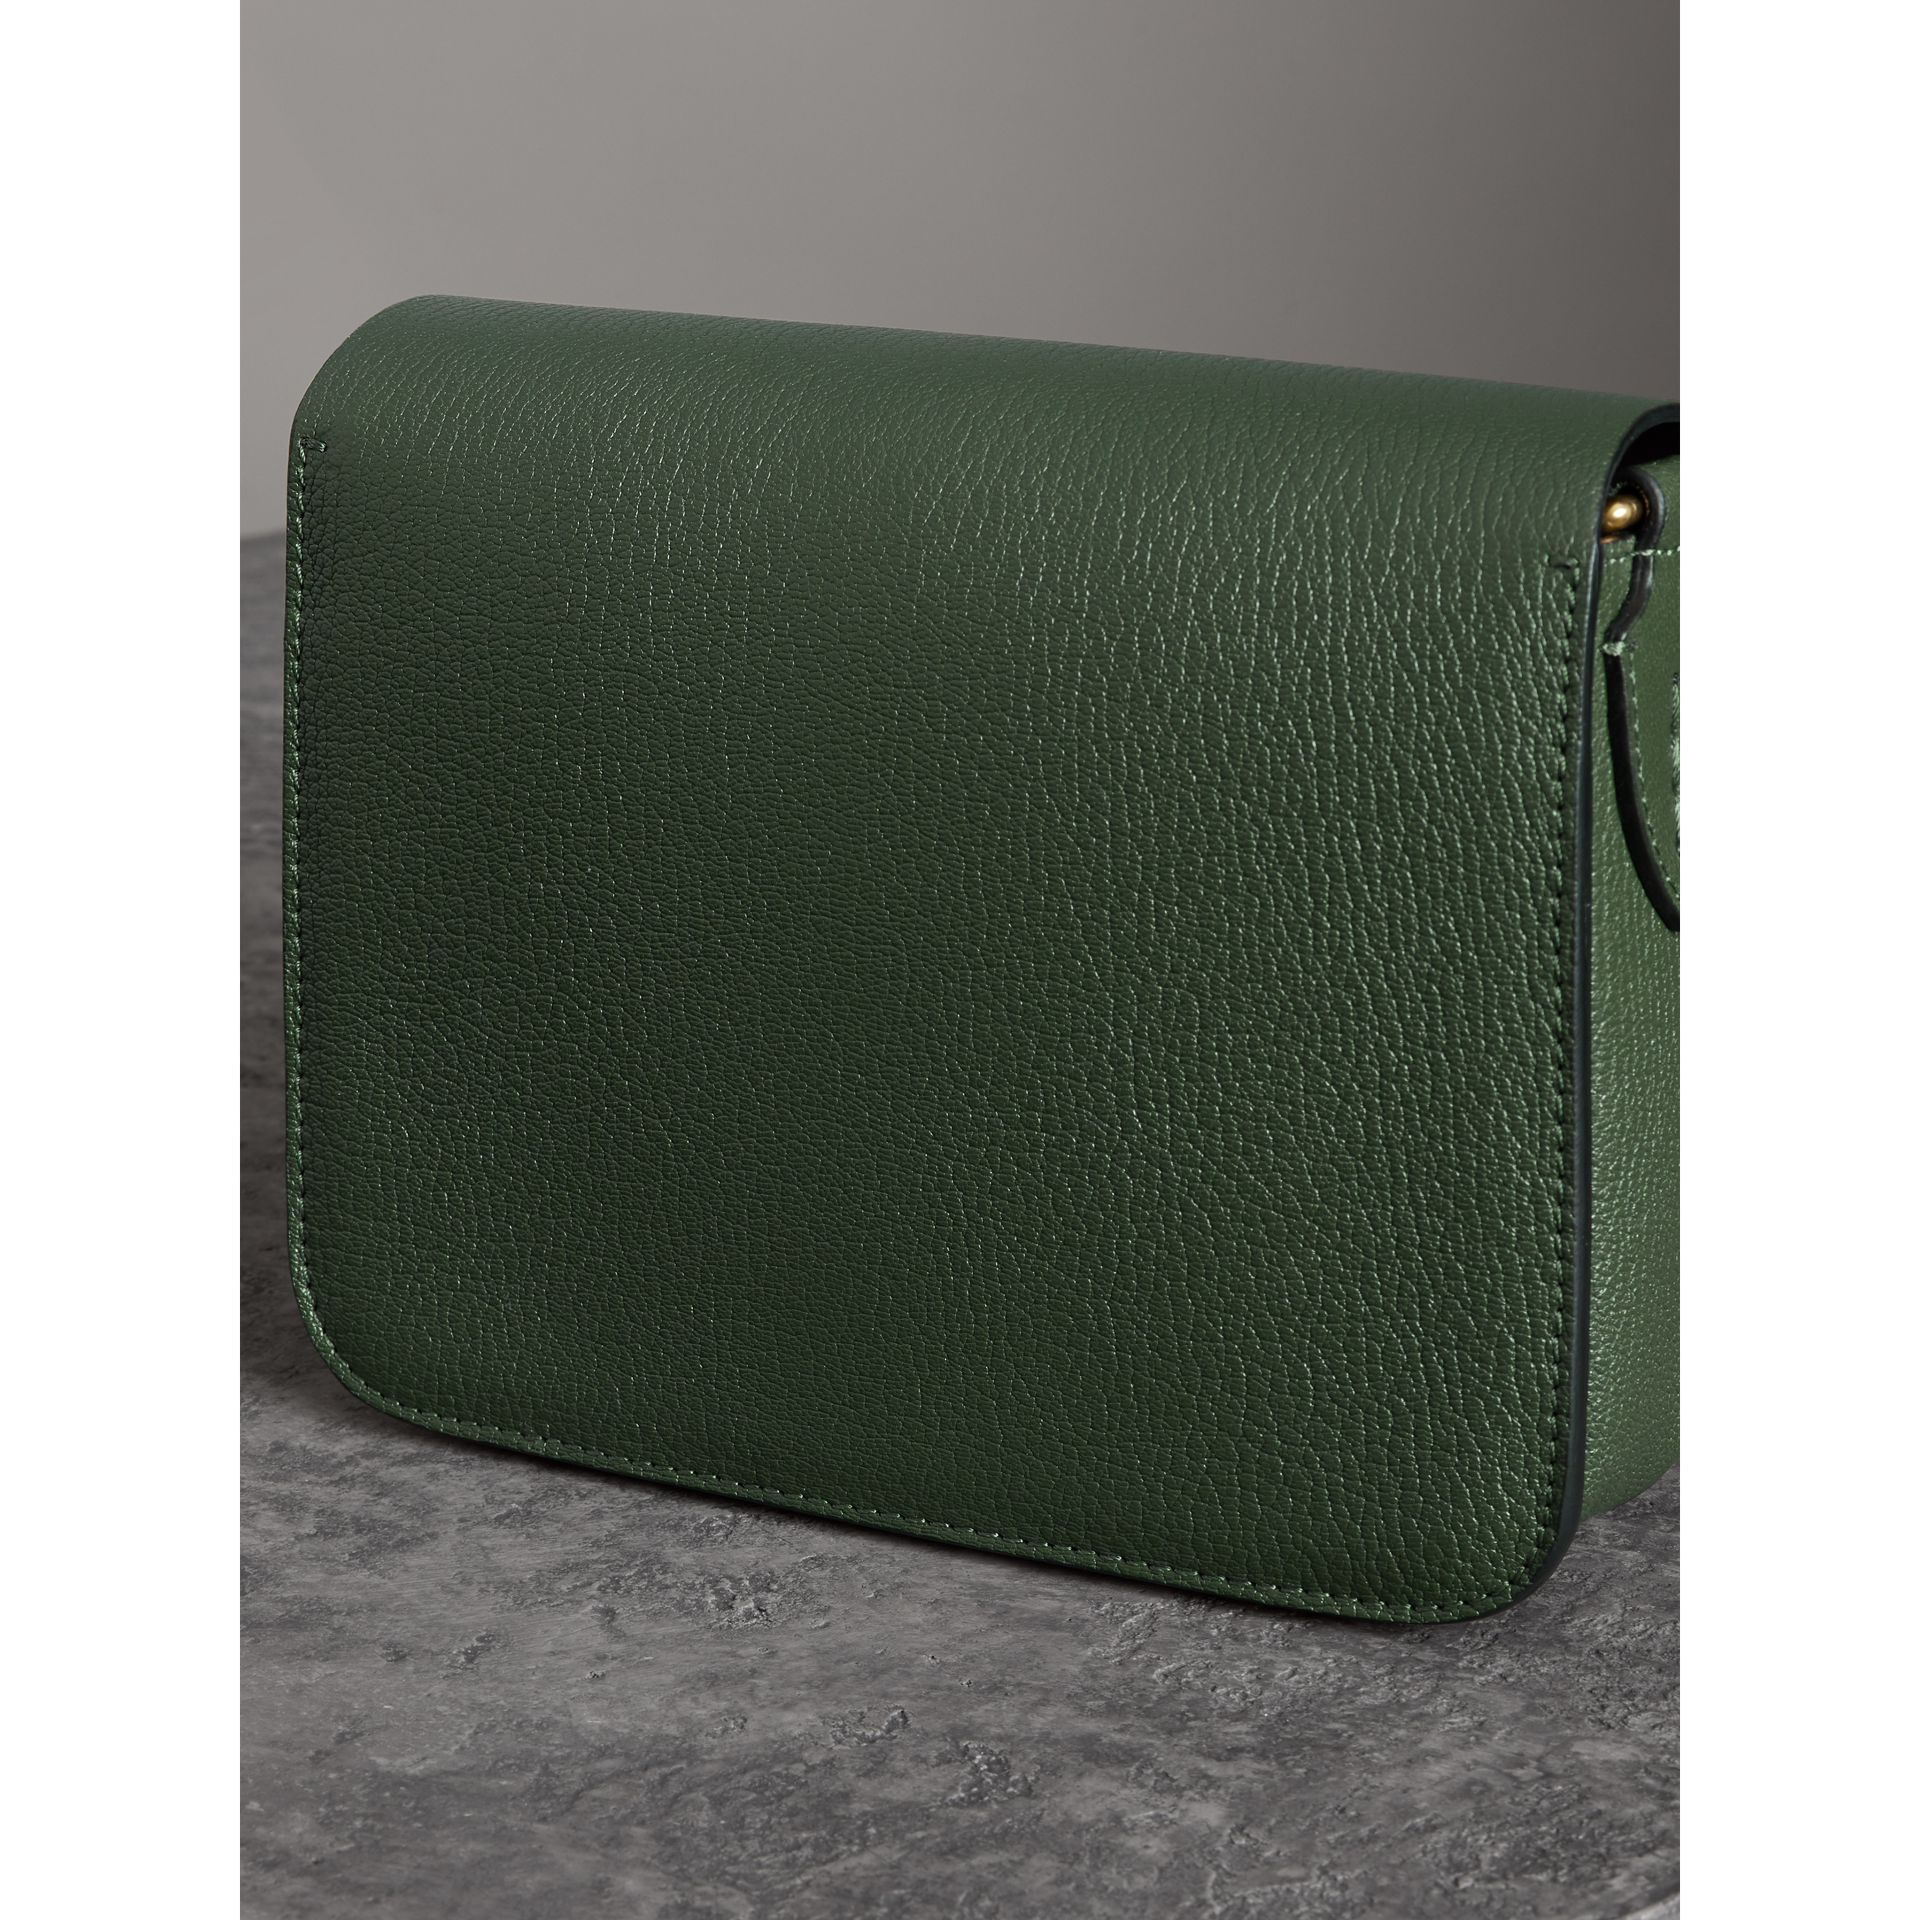 The Square Satchel in Leather in Dark Forest Green - Women | Burberry United Kingdom - gallery image 4